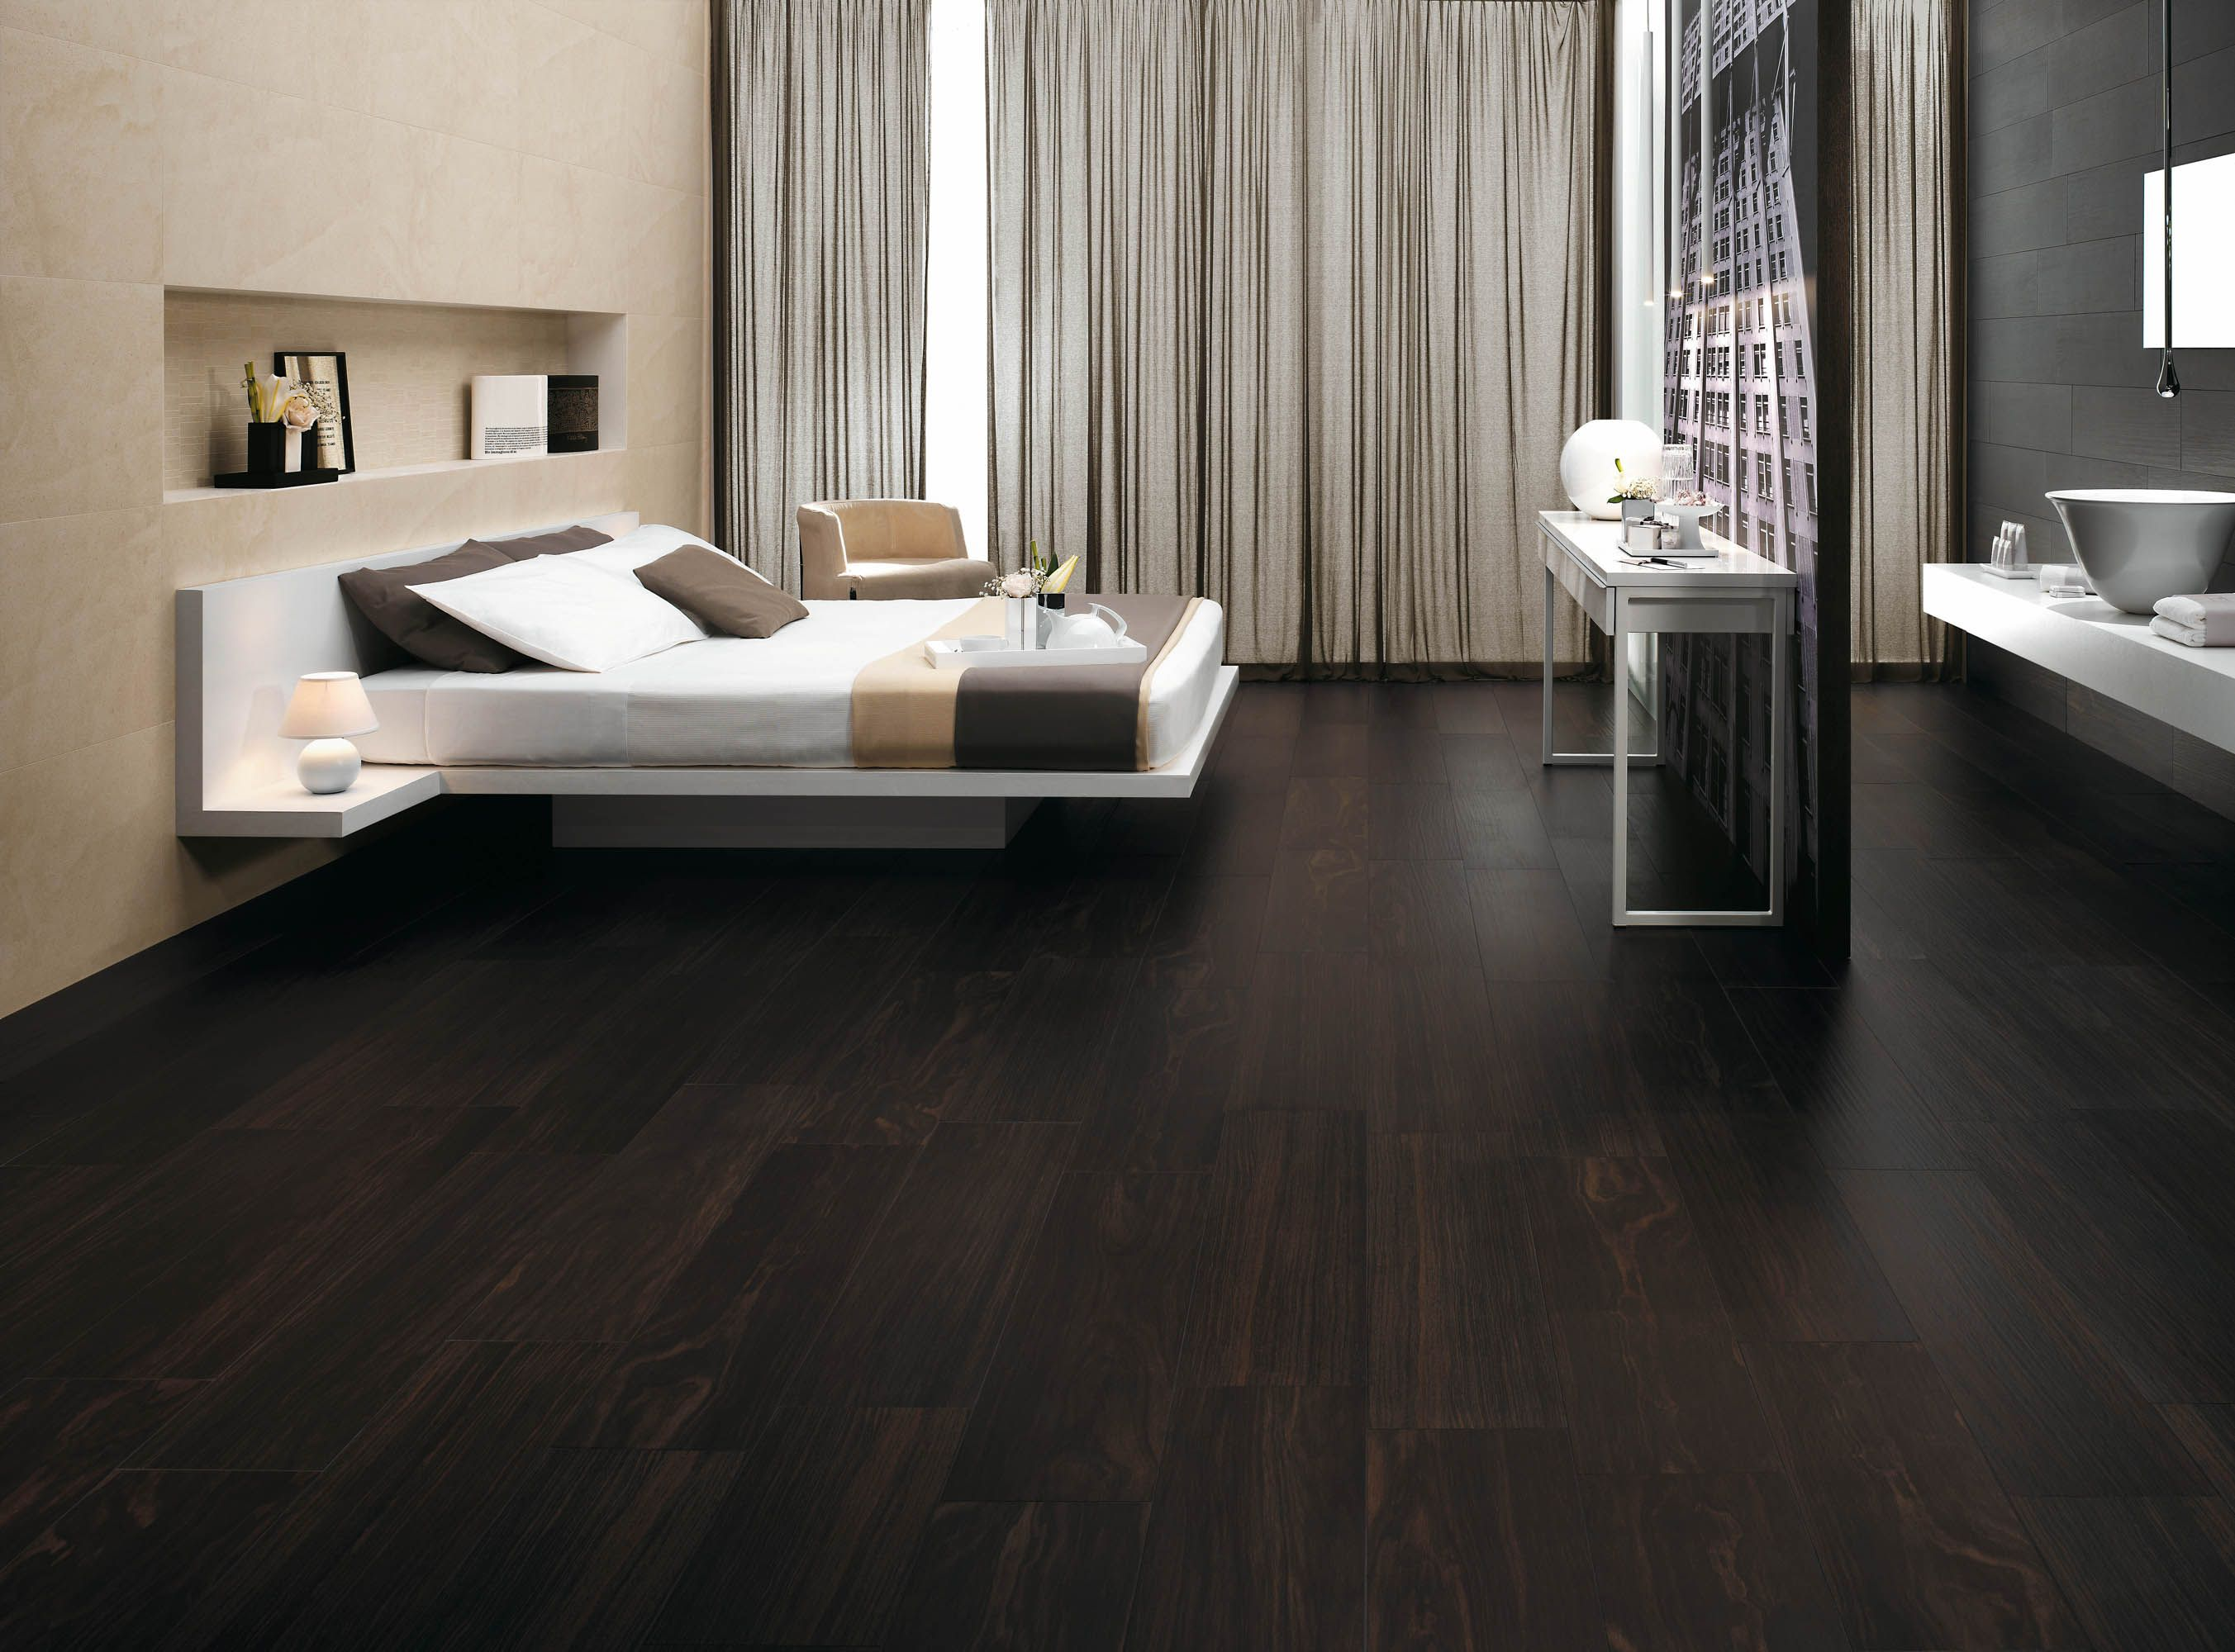 Minoli Tiles Etic A Wood Look Floor With All The Benefits Of Porcelain Etic Ebano By